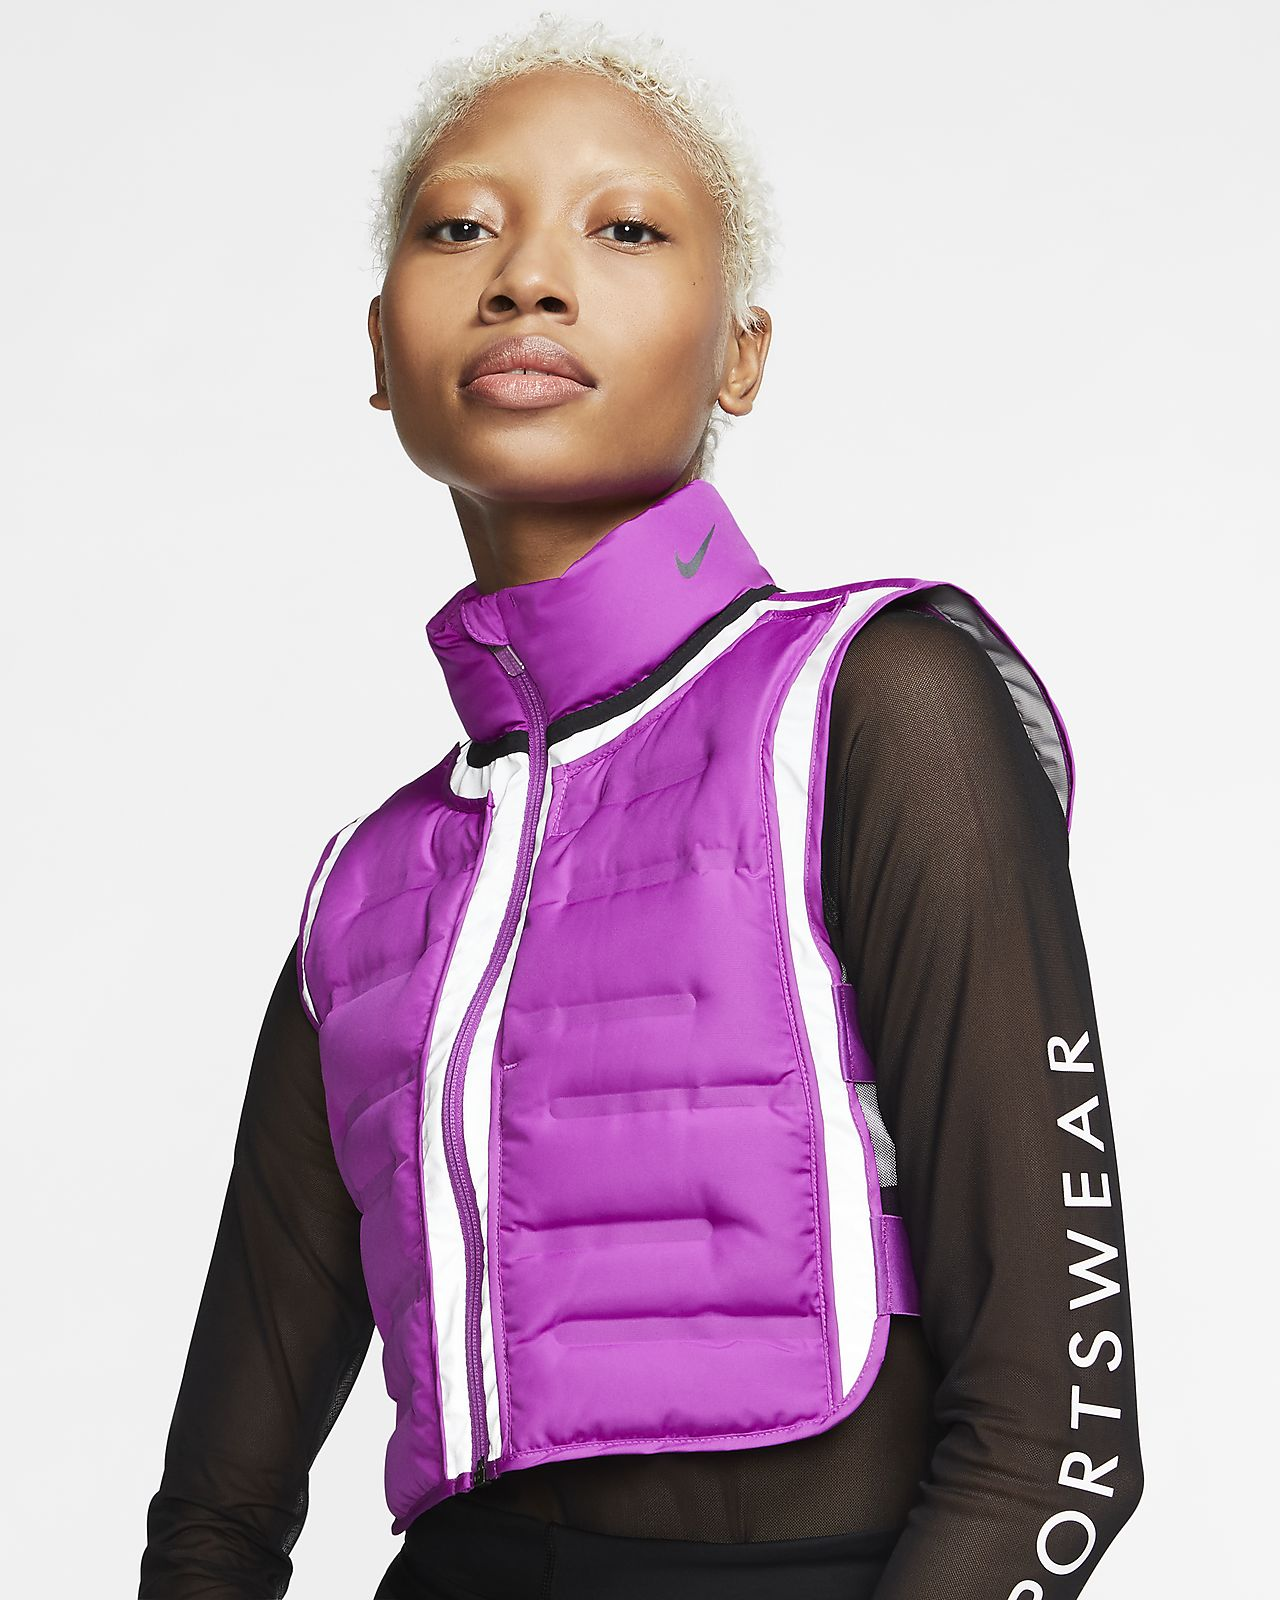 Nike AeroLoft City Ready Women's Running Gilet